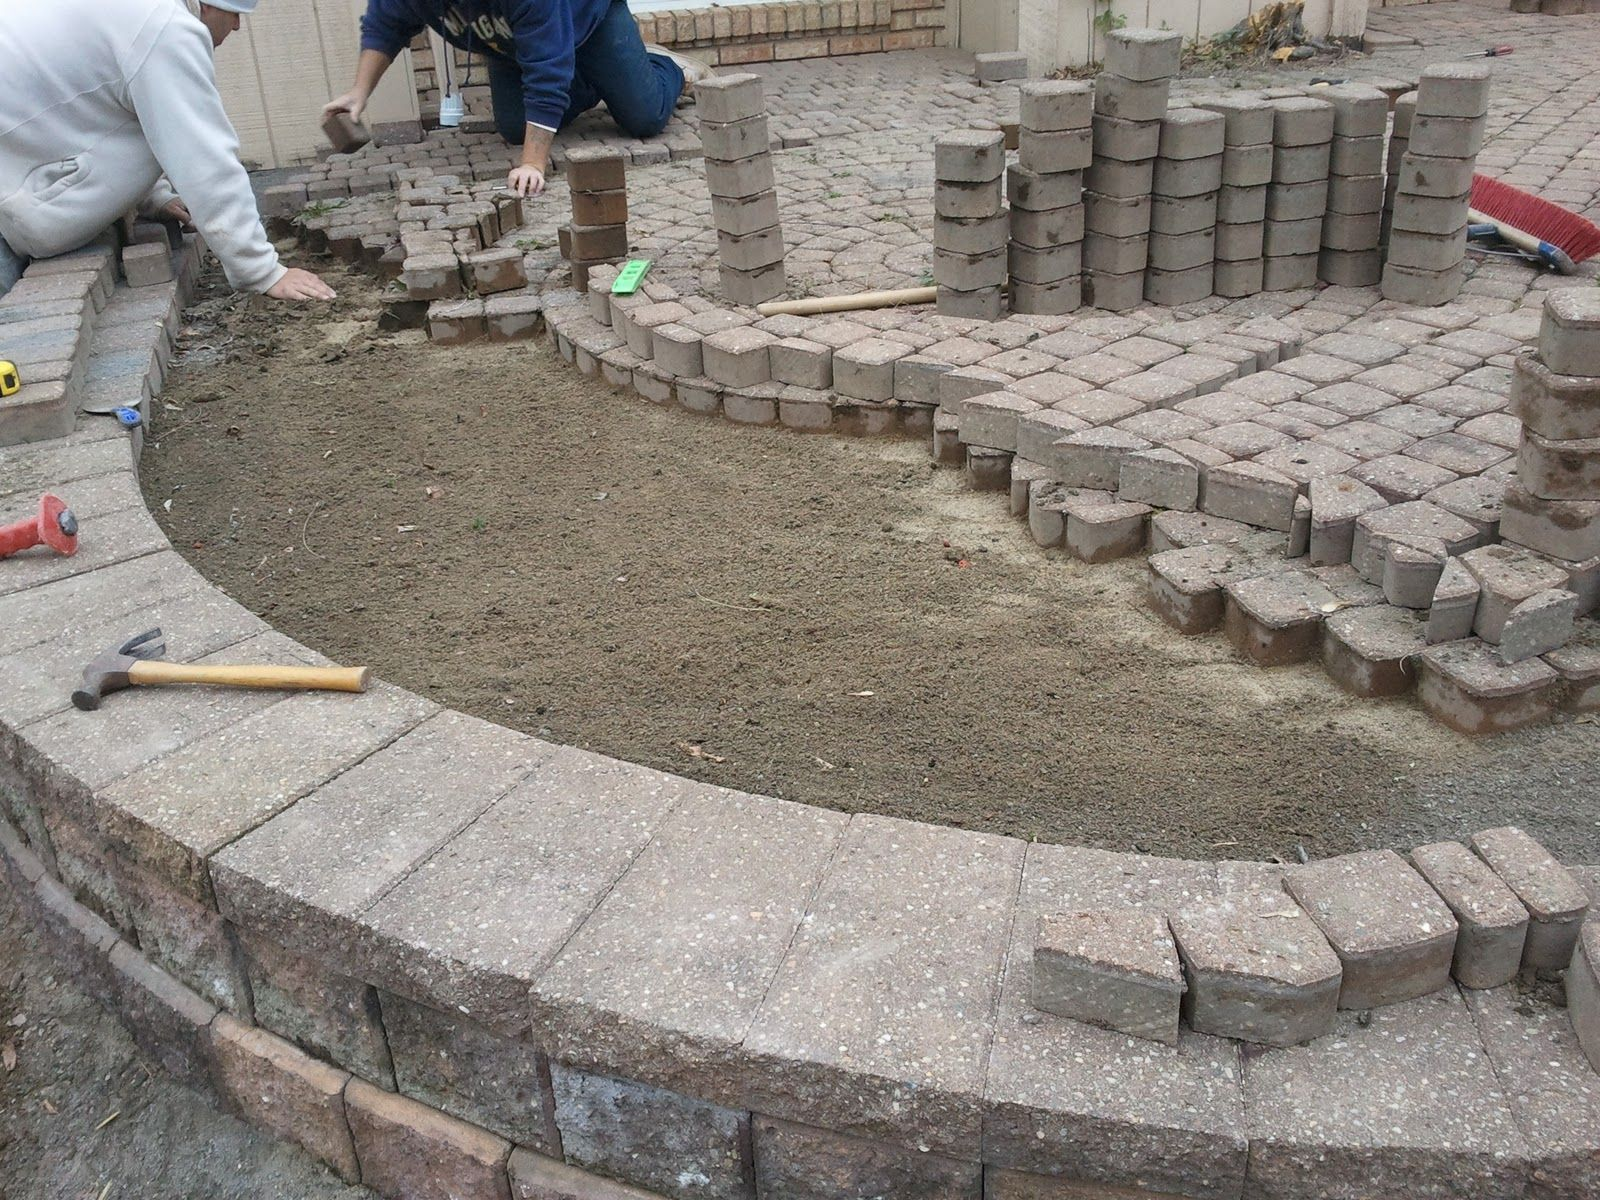 Awesome Huge Benefits Of Brick Paver Patios, Walkways, Driveways, And Modular  Retaining Walls. For Me This Week, It Was A Time Flashback To The  Incredible Pace .